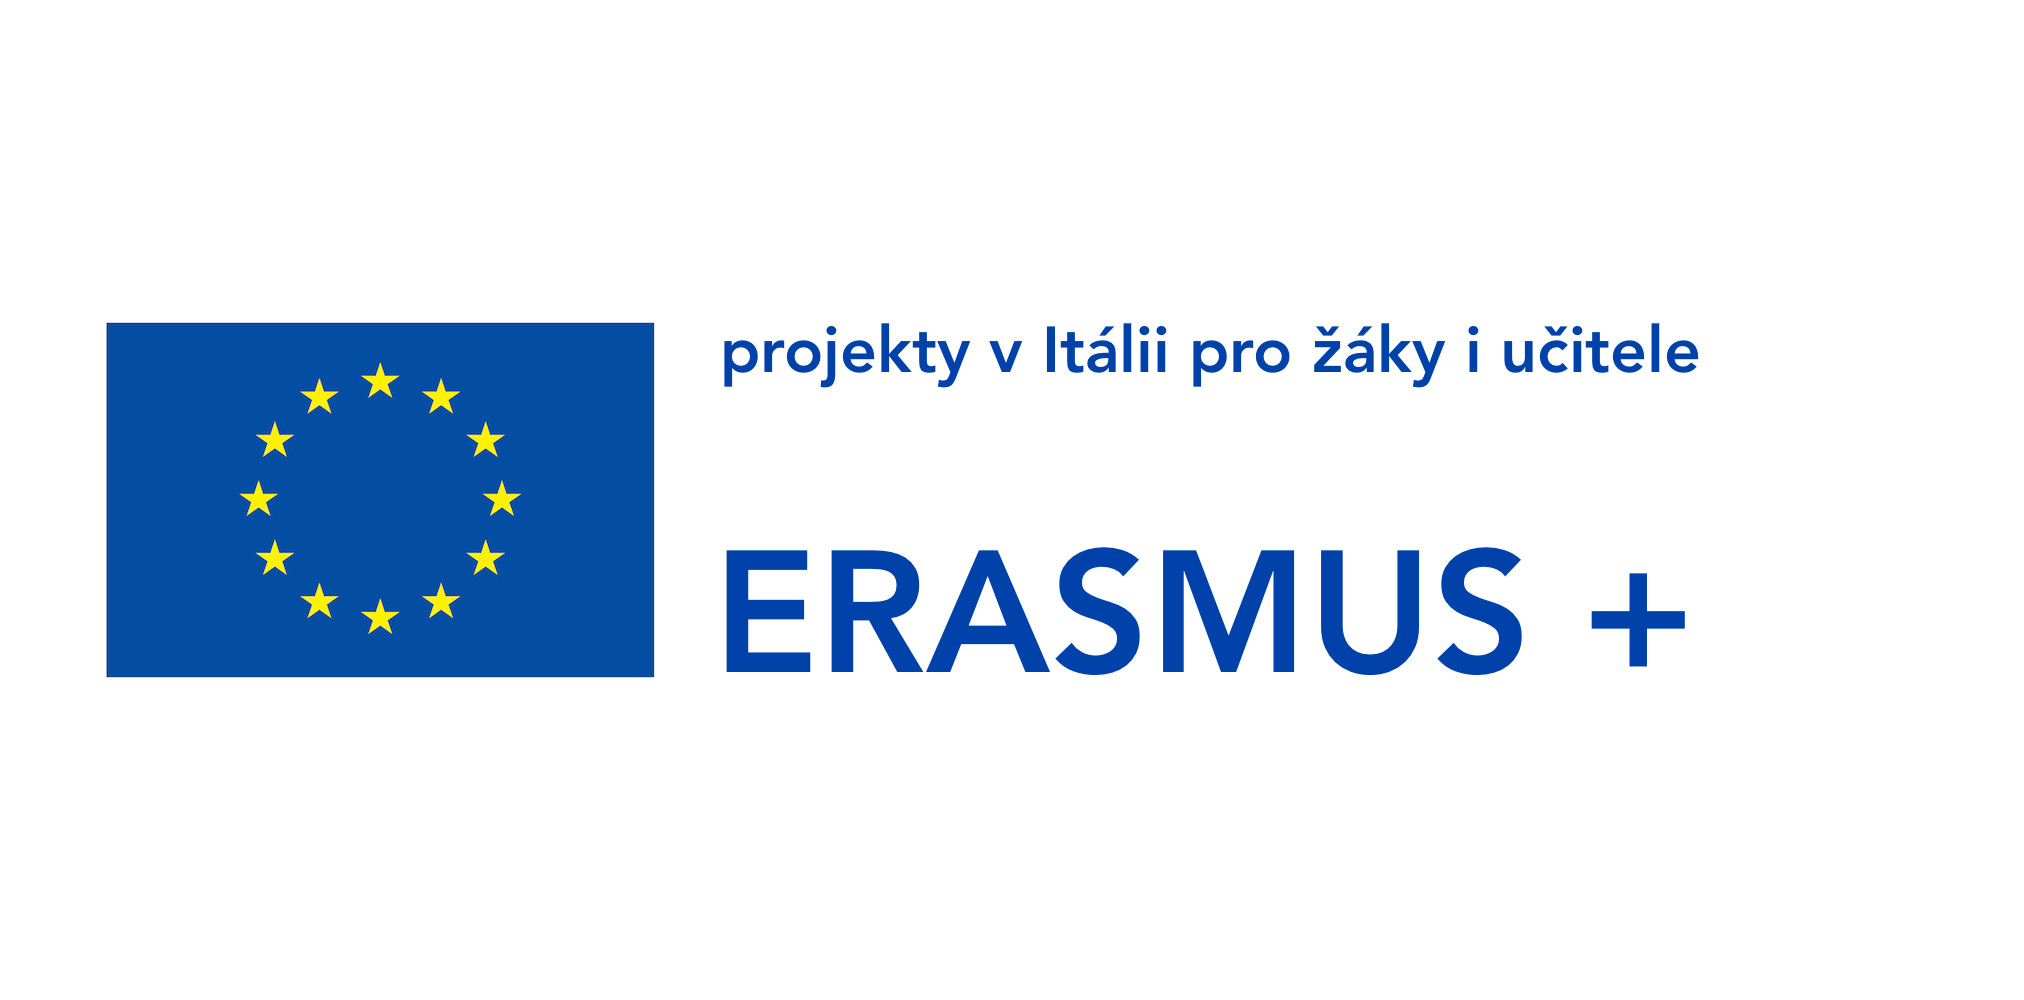 11-erasmus-plus-logo-2